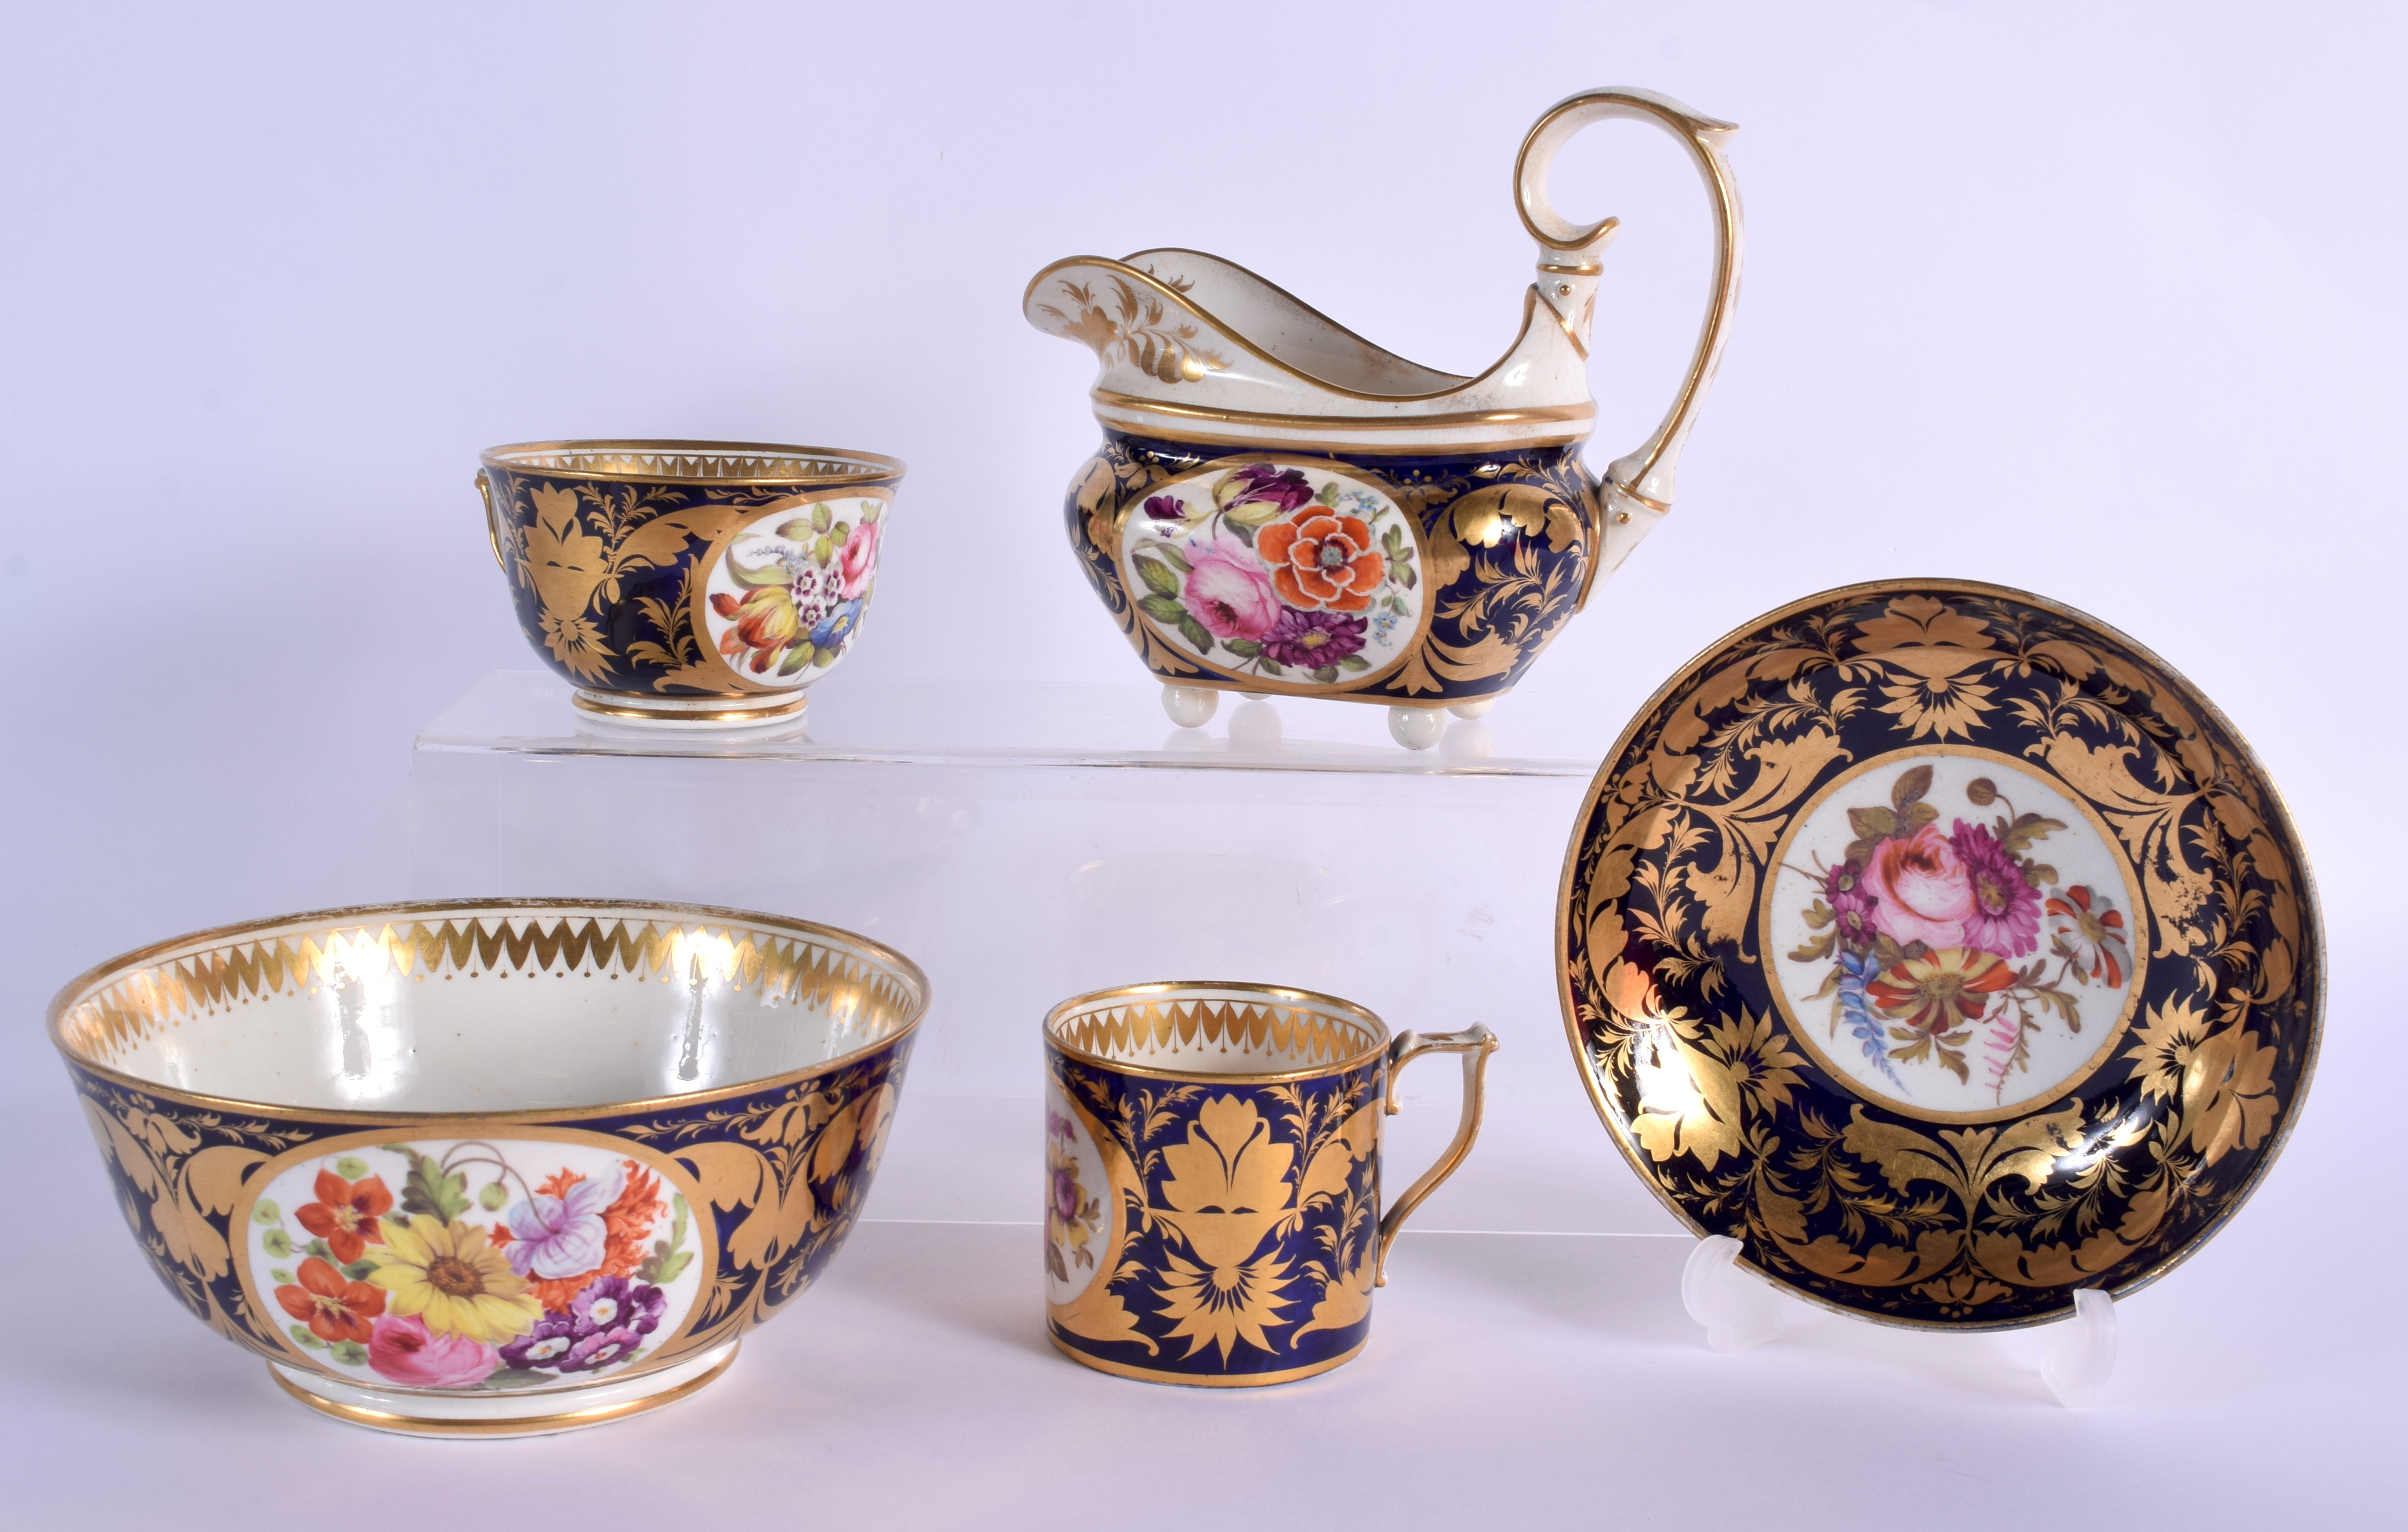 AN EARLY 19TH DERBY PORCELAIN TEAWARES including a trio, cream jug and slop bowl. Largest 12 cm diam